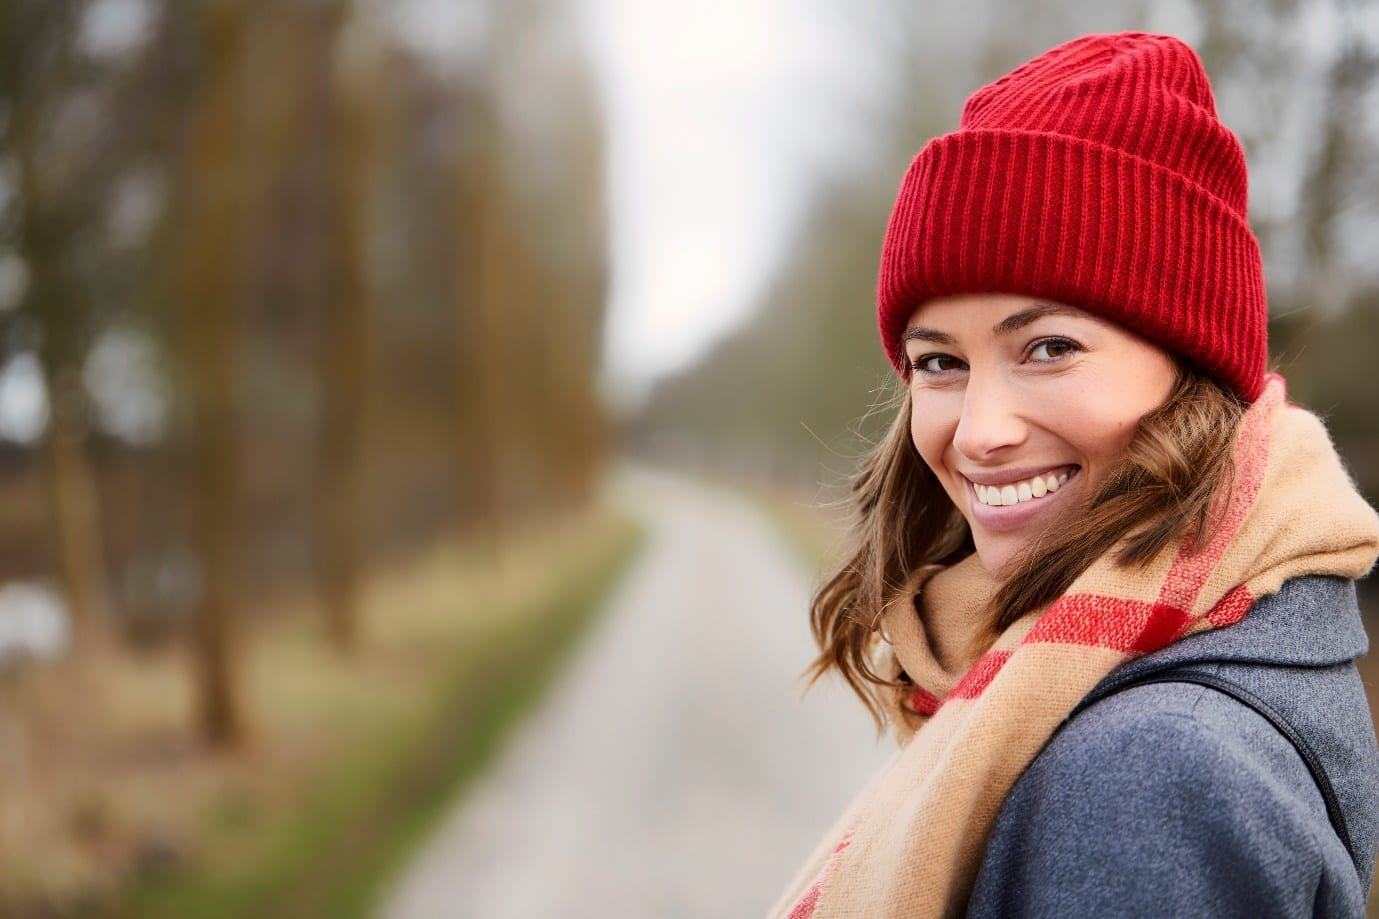 woman with lovely complexion in winter